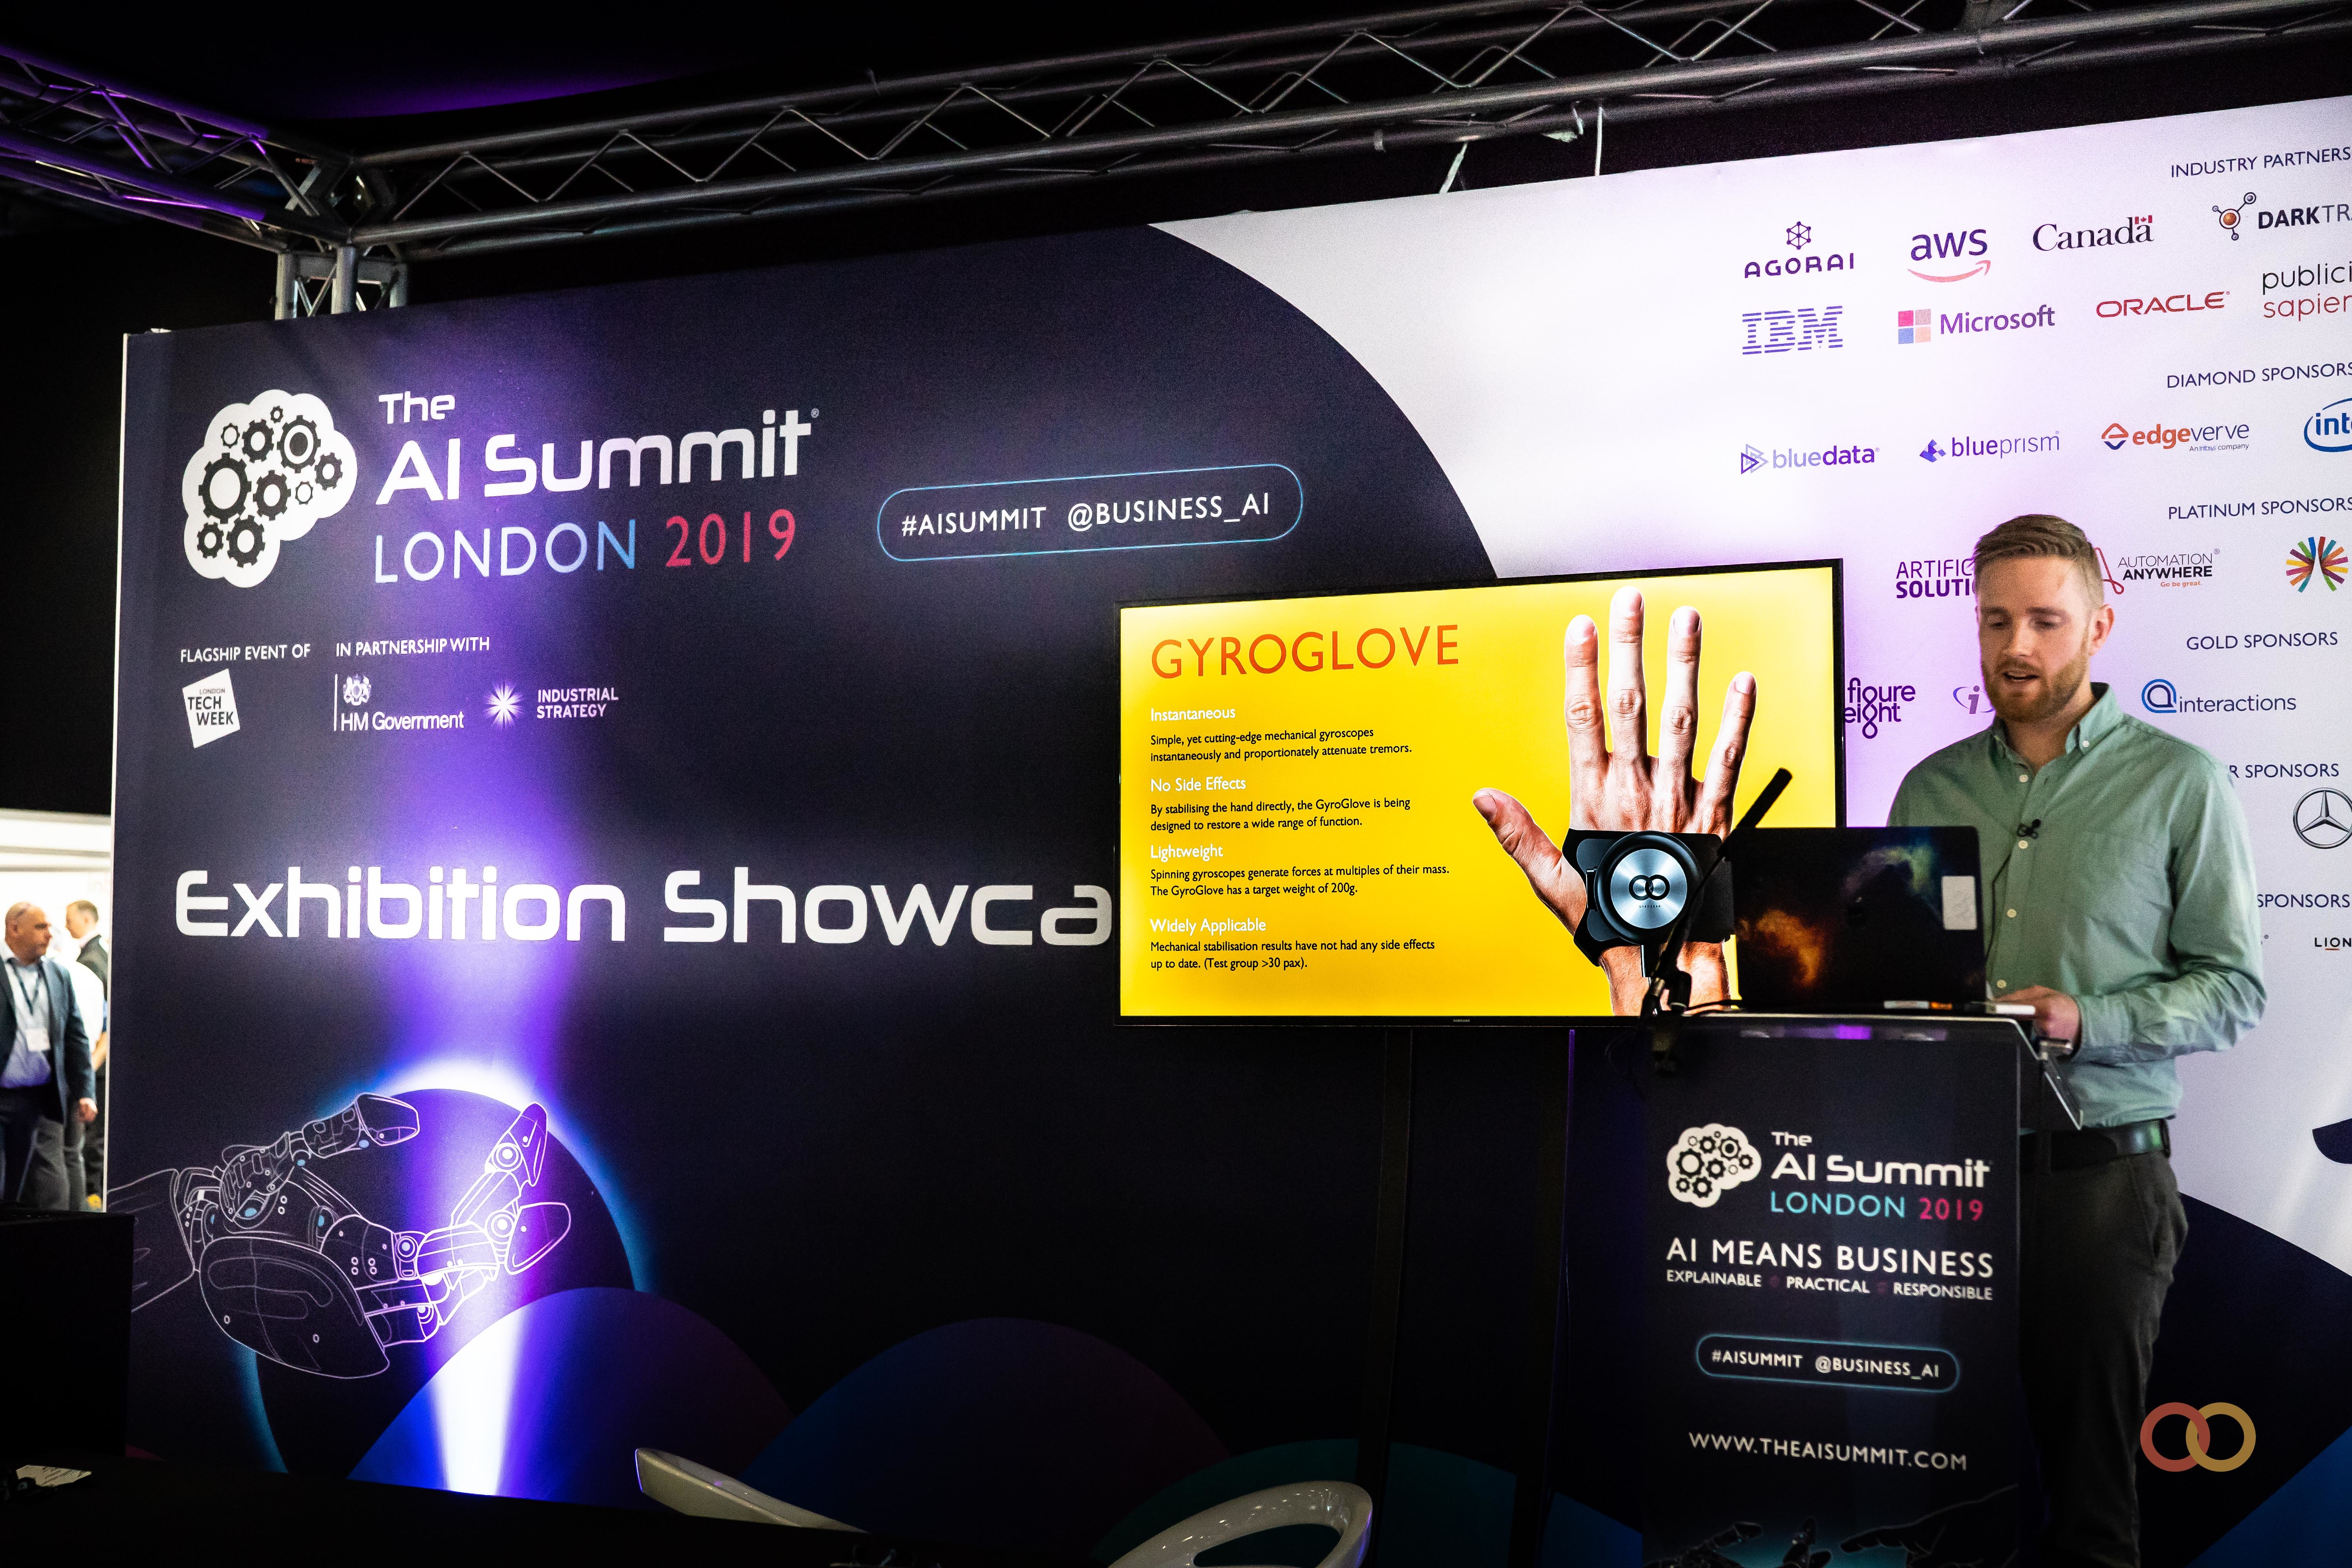 01e970ec 5a6f 43a8 870e 2207947b9a89 - GyroGear Shows Compelling Before-and-After Video at AI Summit London